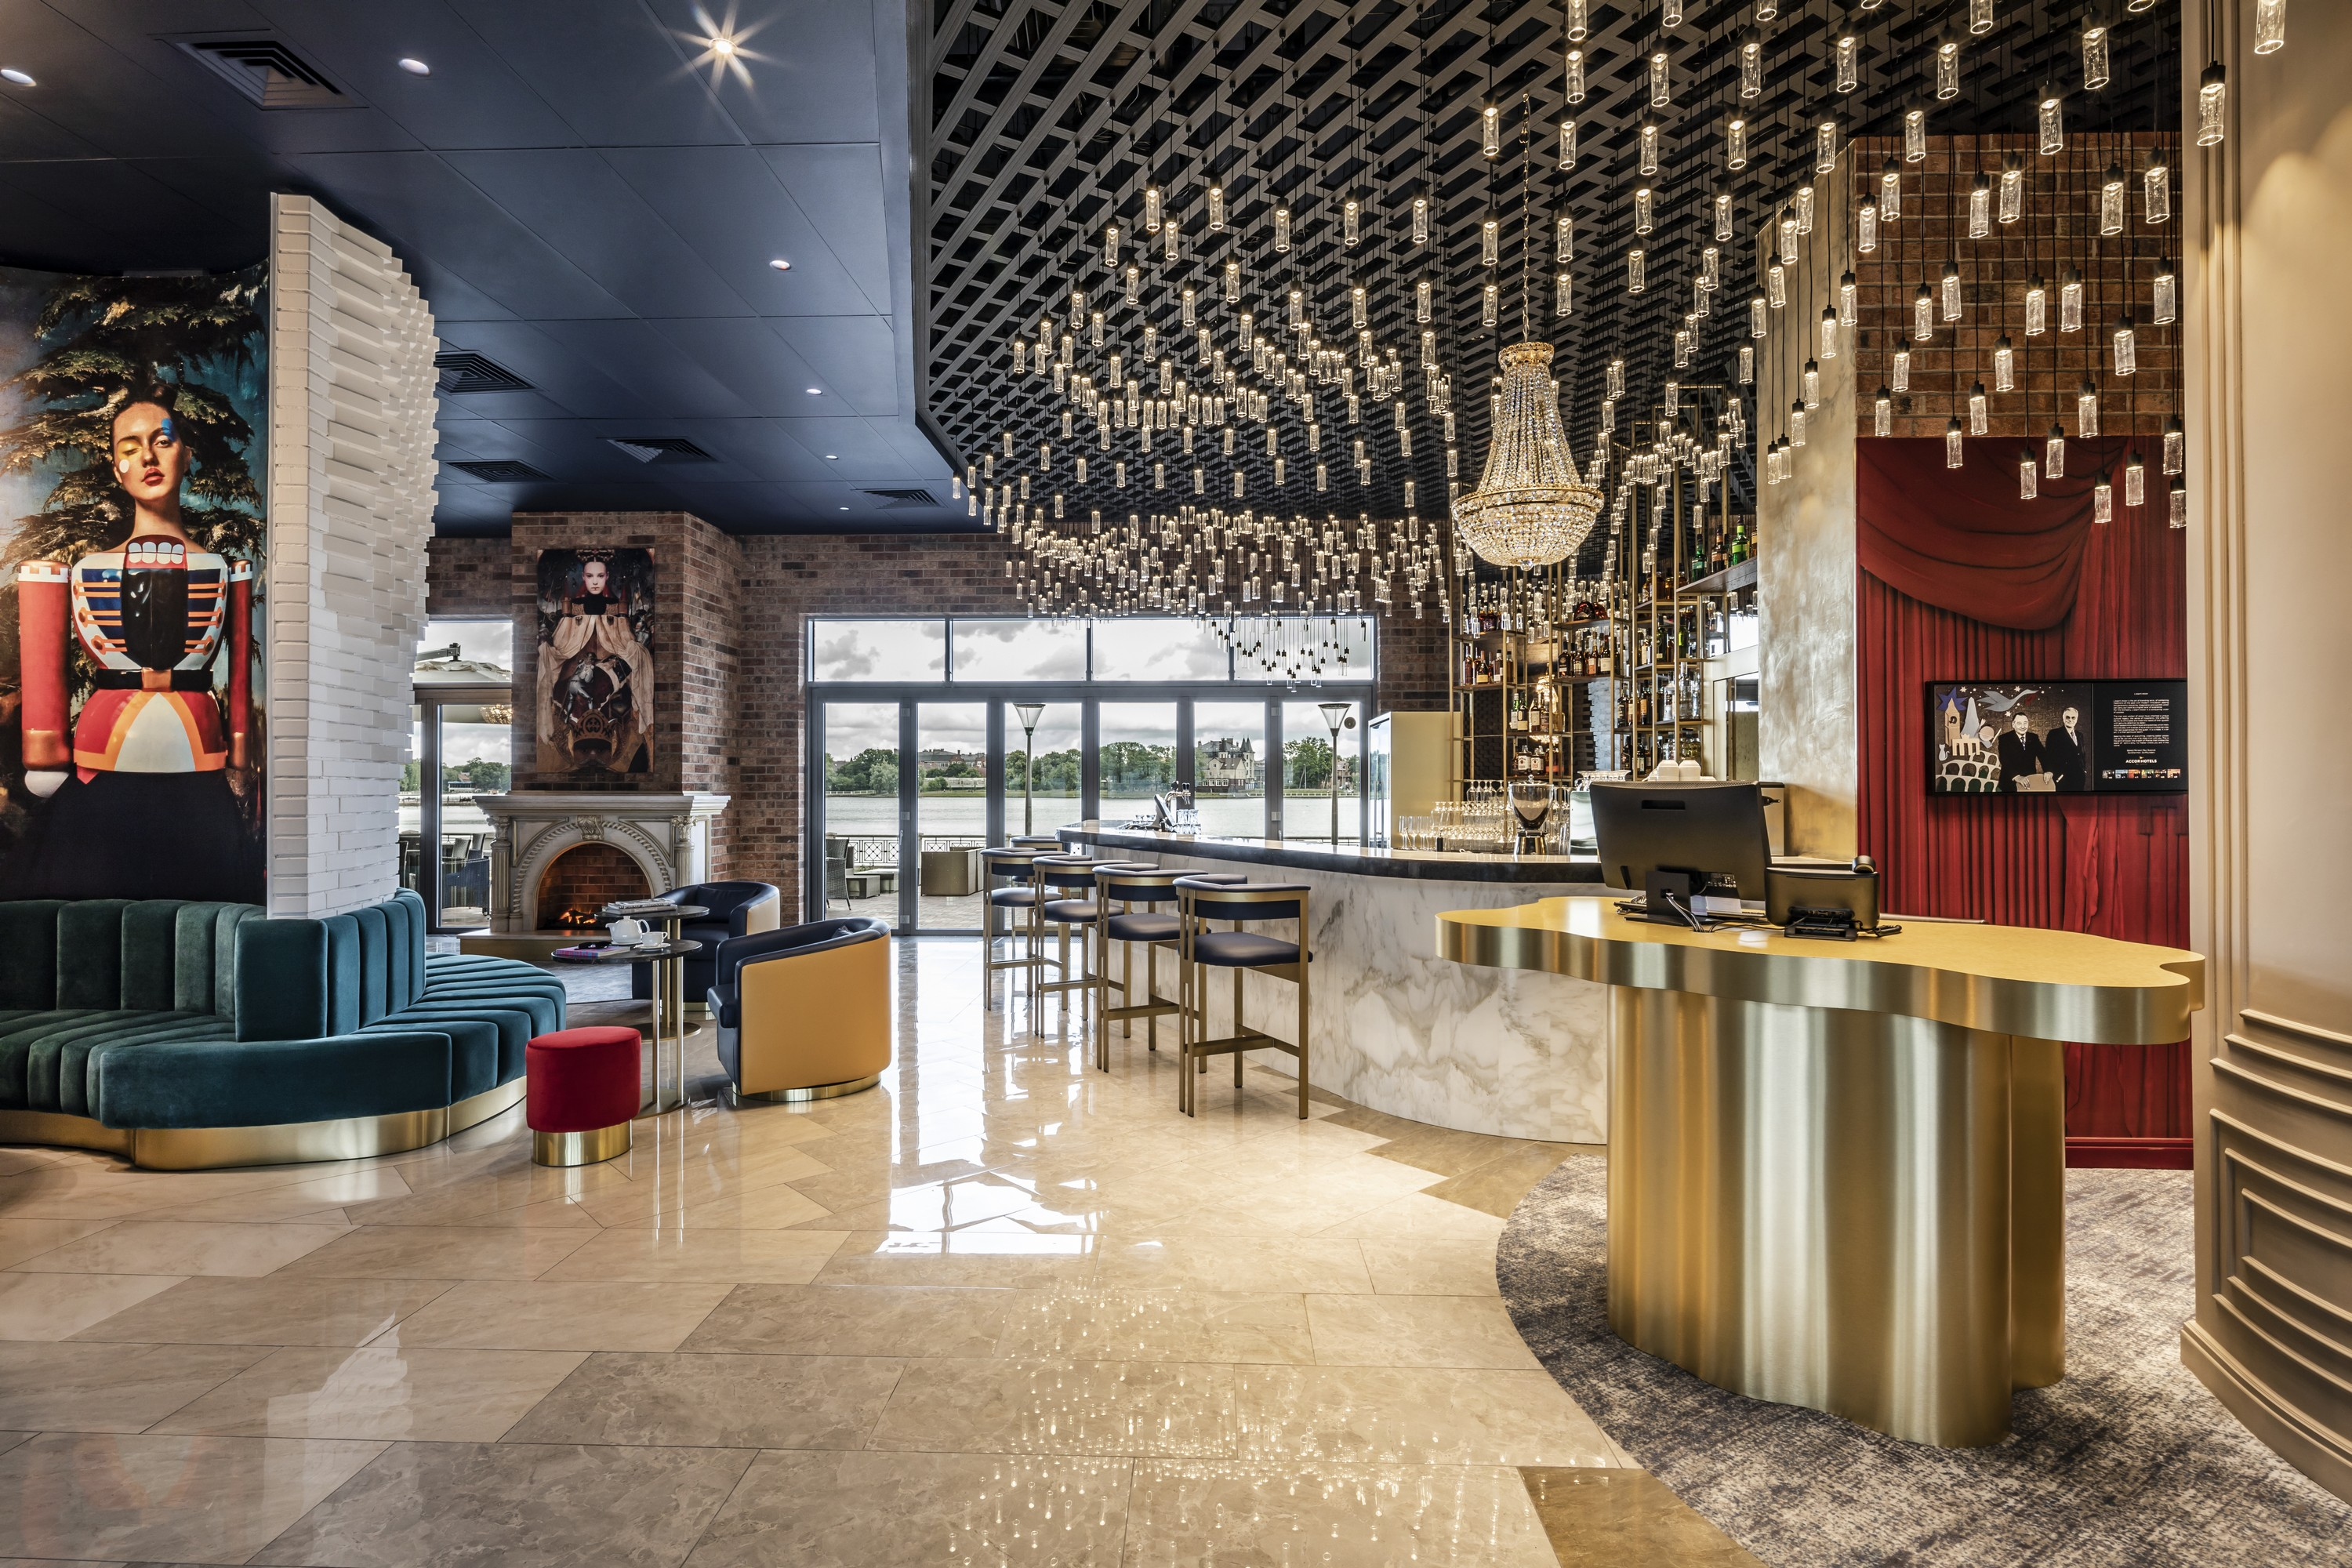 Hotel Mercure Kaliningrad - A tale of magical hospitality design